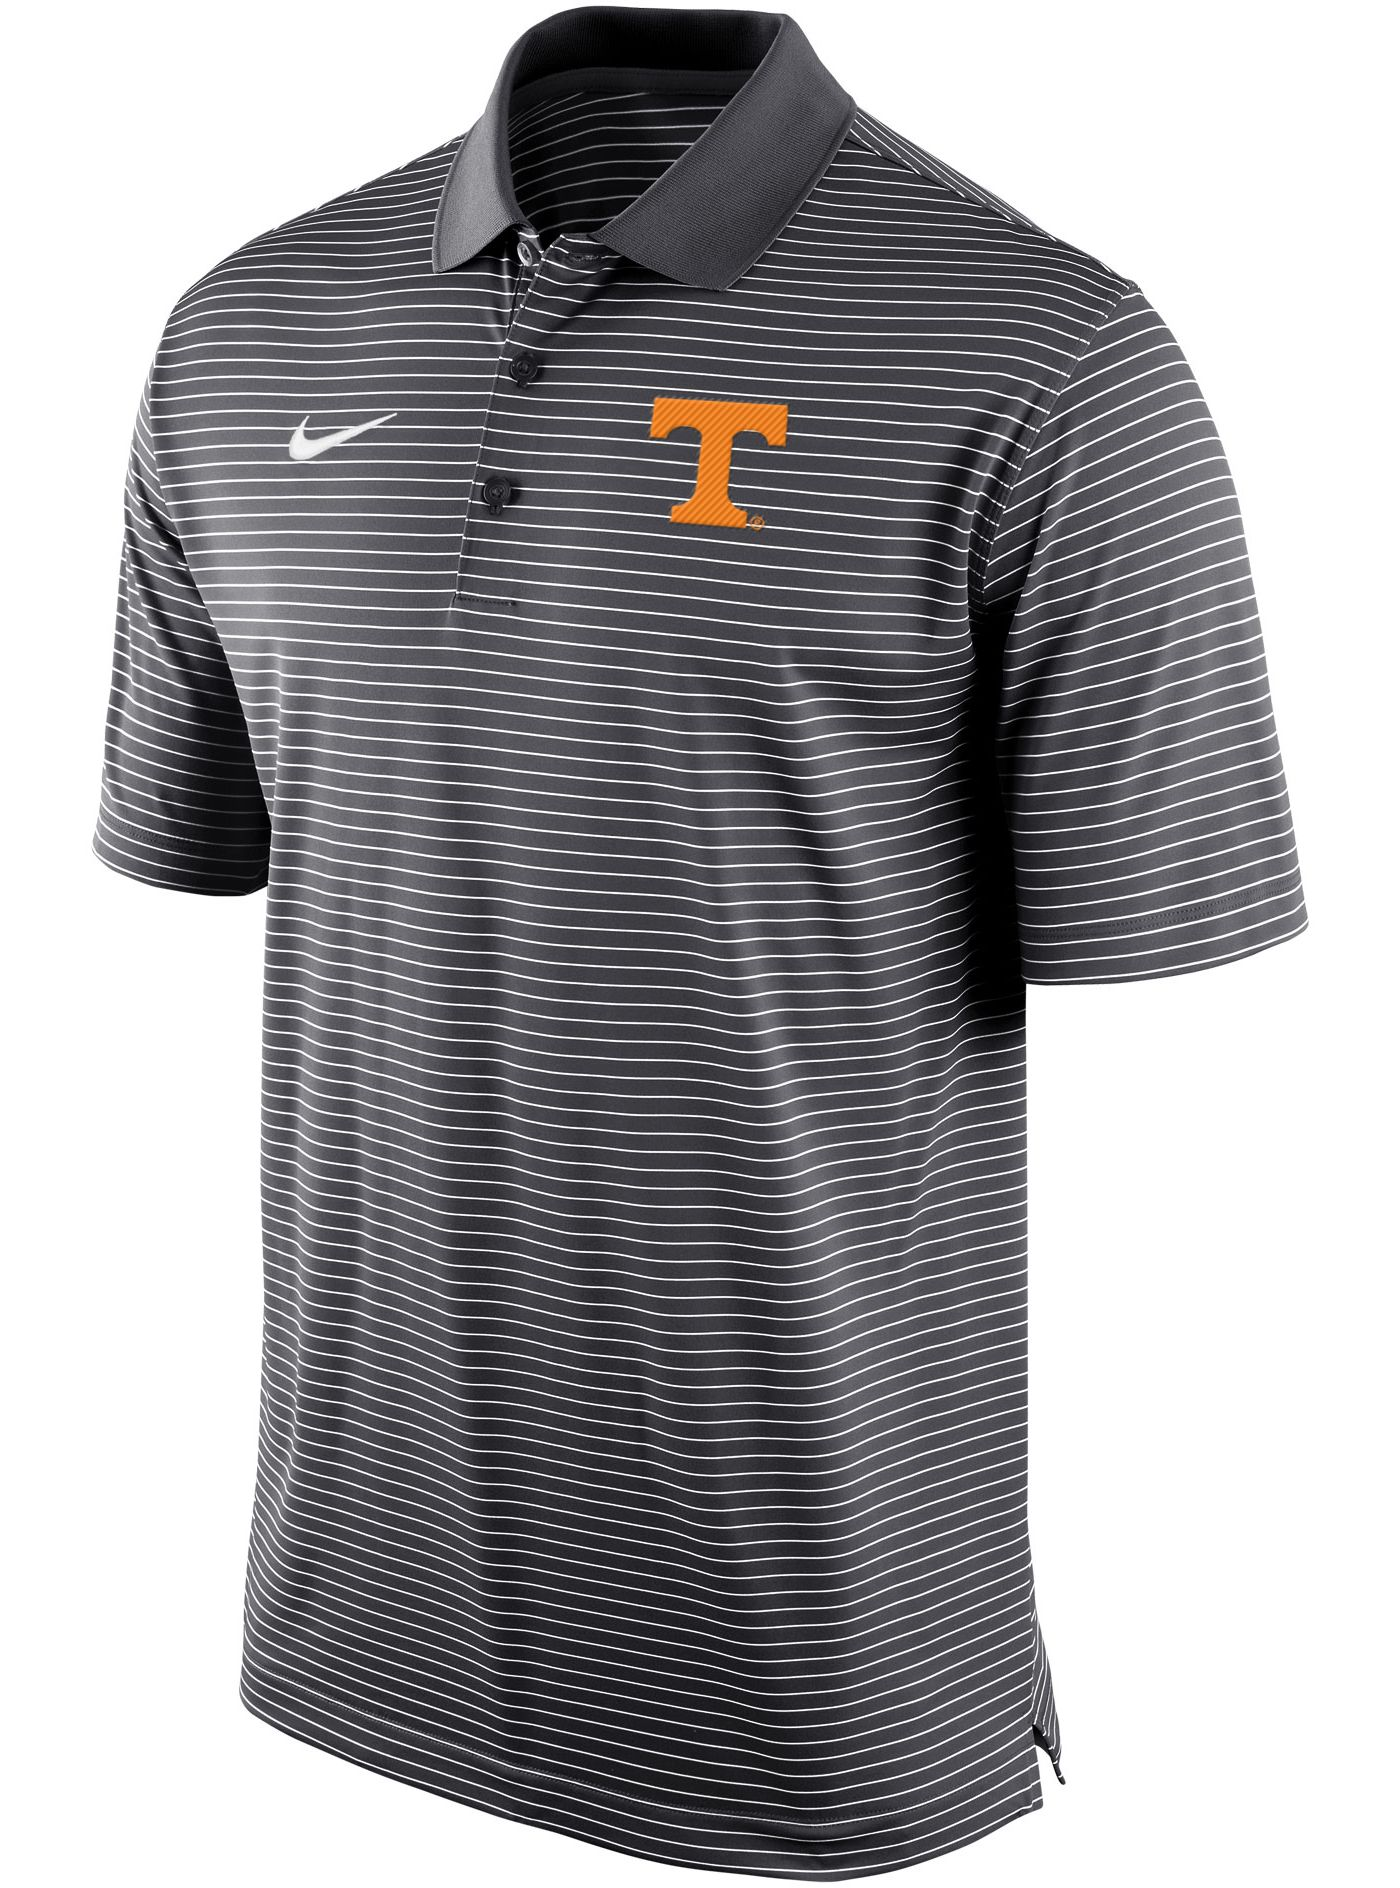 Nike Men's Tennessee Volunteers Grey Stadium Striped Polo